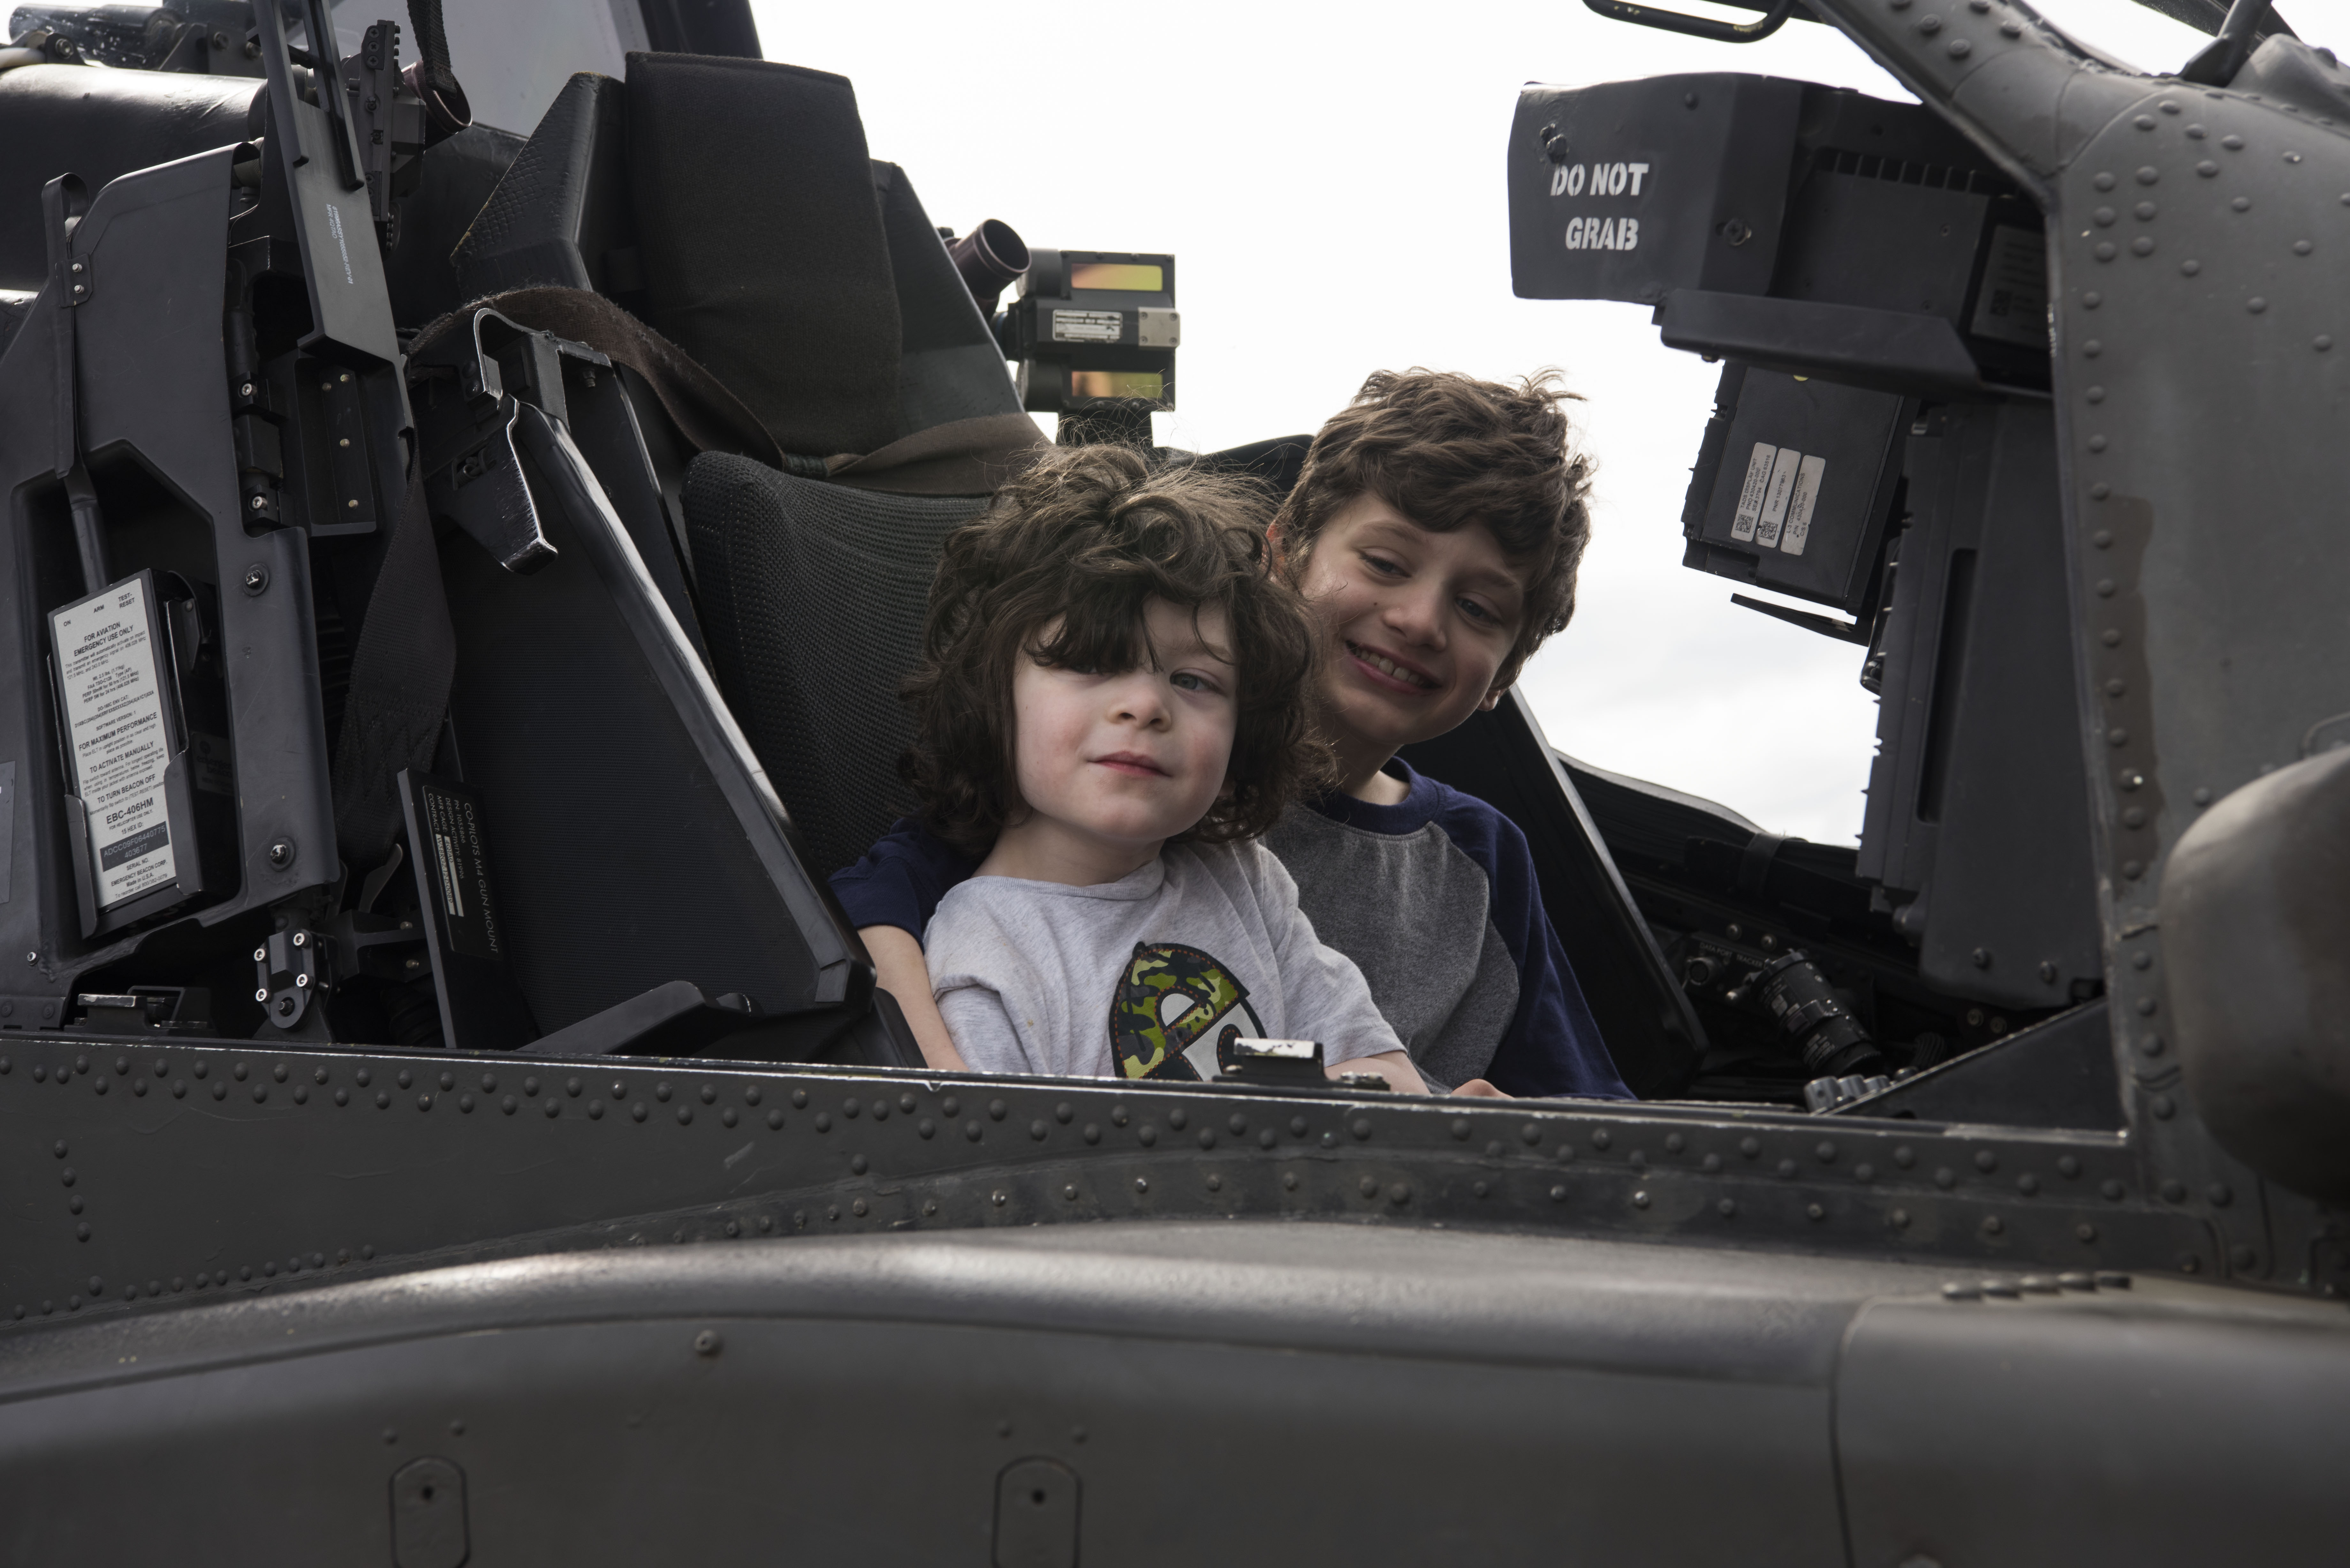 Liam Newbury, 5, and Payton Newbury, 8, sons of U.S. Air Force Master Sgt. Ryan Newbury, 732nd Air Mobility Squadron maintenance operations center superintendent, smile during the Arctic Thunder Open House Special Needs and Department of Defense Family Day at Joint Base Elmendorf-Richardson, Alaska, June 29, 2018. During the biennial open house, JBER opens its gates to the public and hosts multiple performers including the U.S. Air Force Thunderbirds, JBER Joint Forces Demonstration and the U.S. Air Force F-22 Raptor Demonstration Team. (U.S. Air Force photo by Airman 1st Class Jonathan Valdes Montijo)